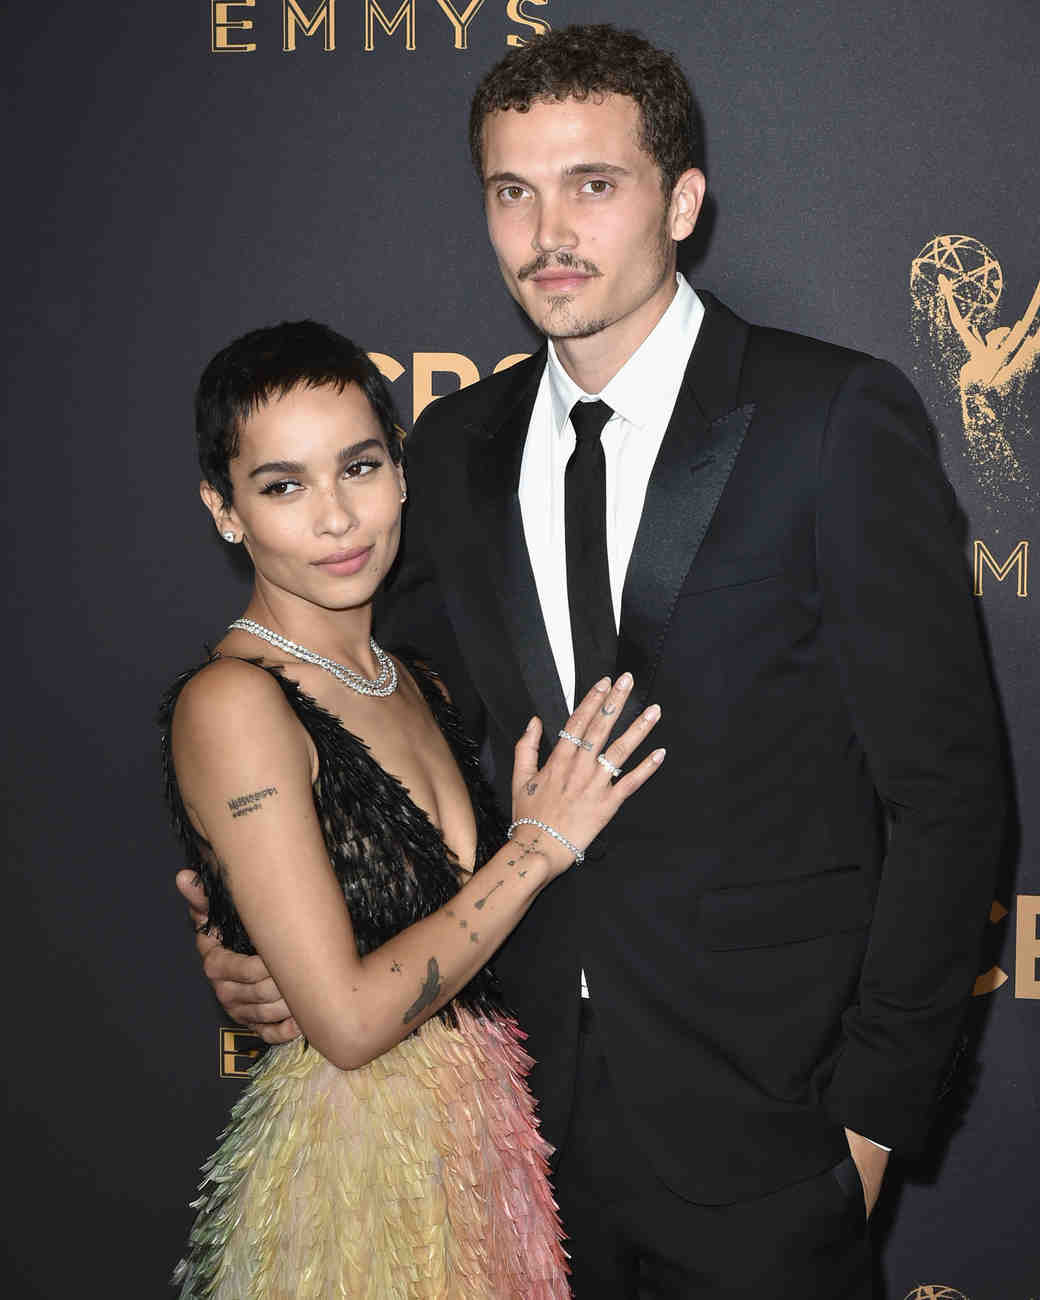 zoe kravitz karl glusman together at the emmys